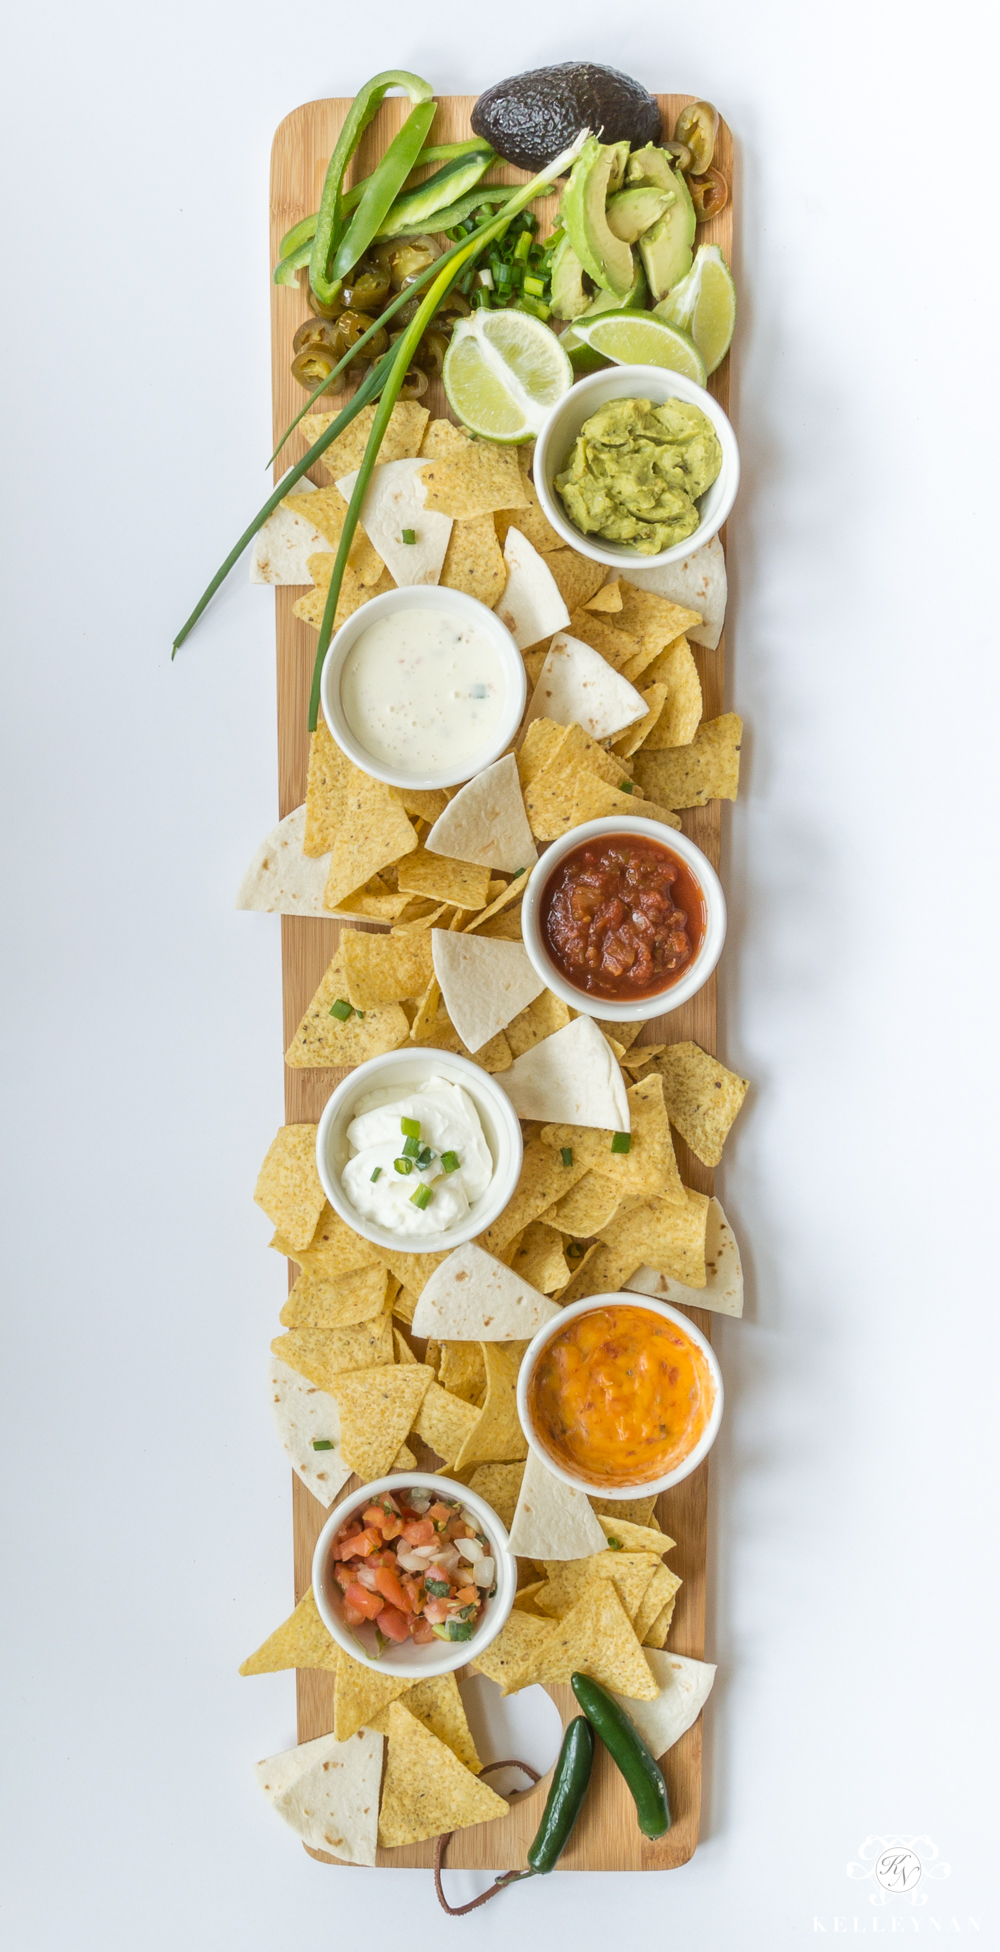 Southwest Mexican chips and dip appetizer board